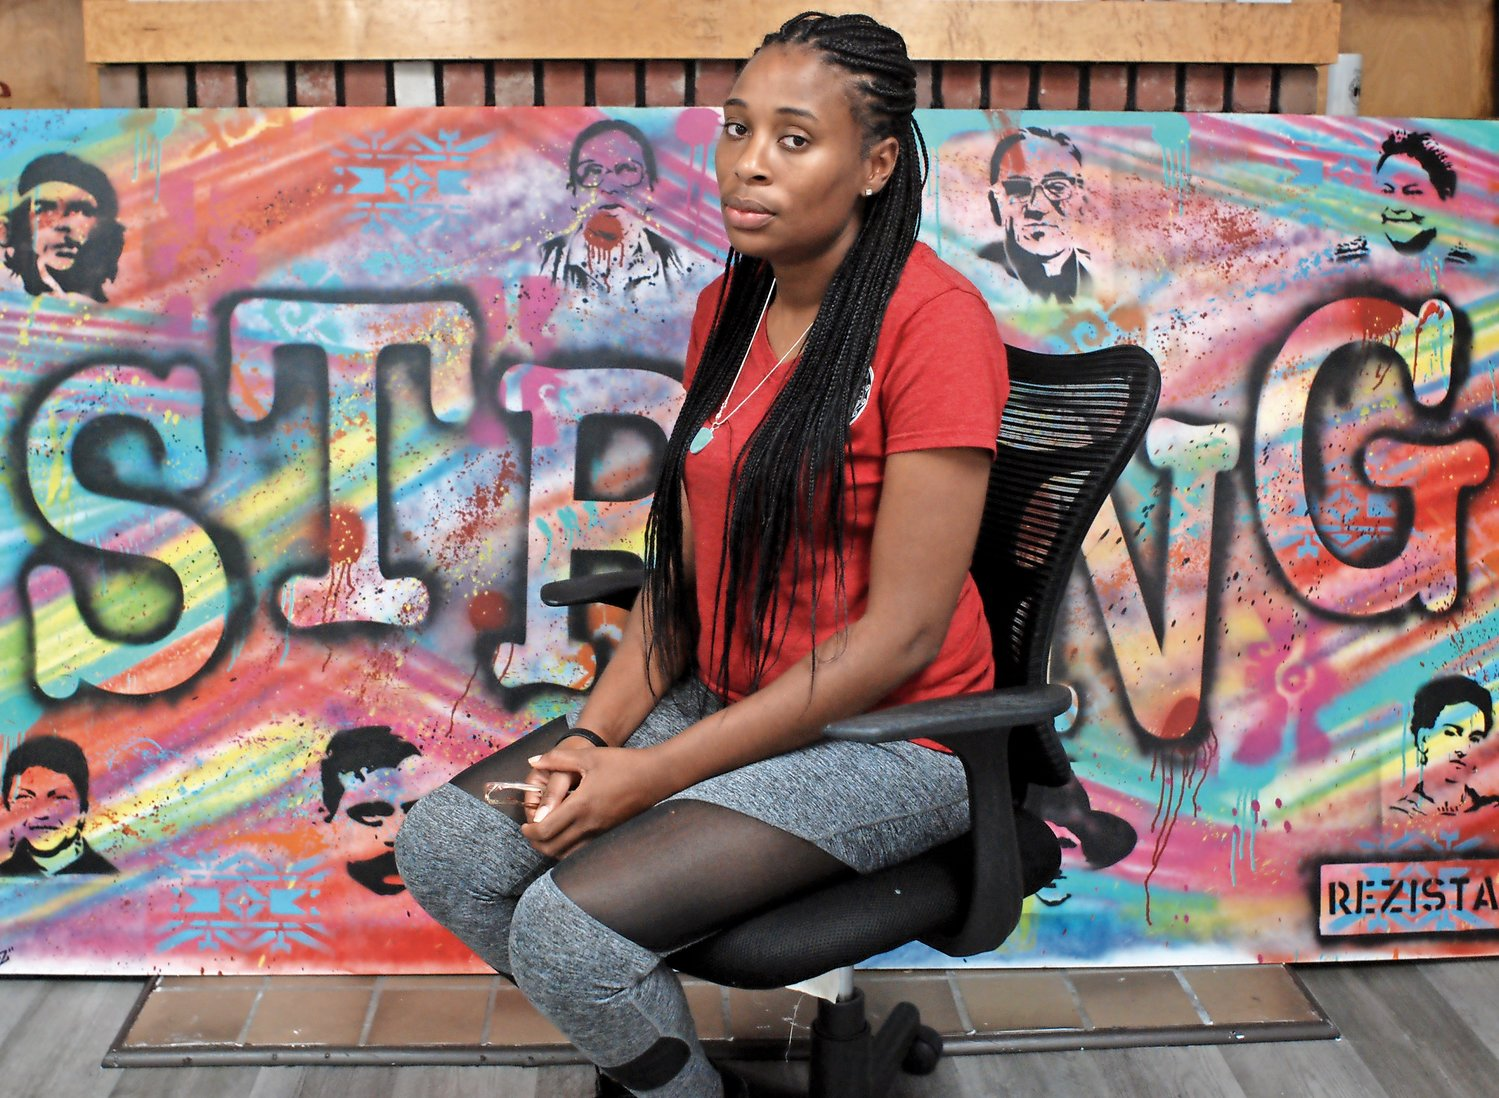 Sharelle Allen, 31, pictured at STRONG Youth in Uniondale, where she is a case manager, said she believes her severe pain when she gave birth suddenly to her second child in 2017 was ignored by her nurse and midwife. According to experts, medical professionals often overlook pain felt by African-American patients, believing that black people have a higher tolerance for pain than white people. Implicit bias and racism in the medical field help explain the disparity in the infant mortality rate between communities of color and white communities, experts say.